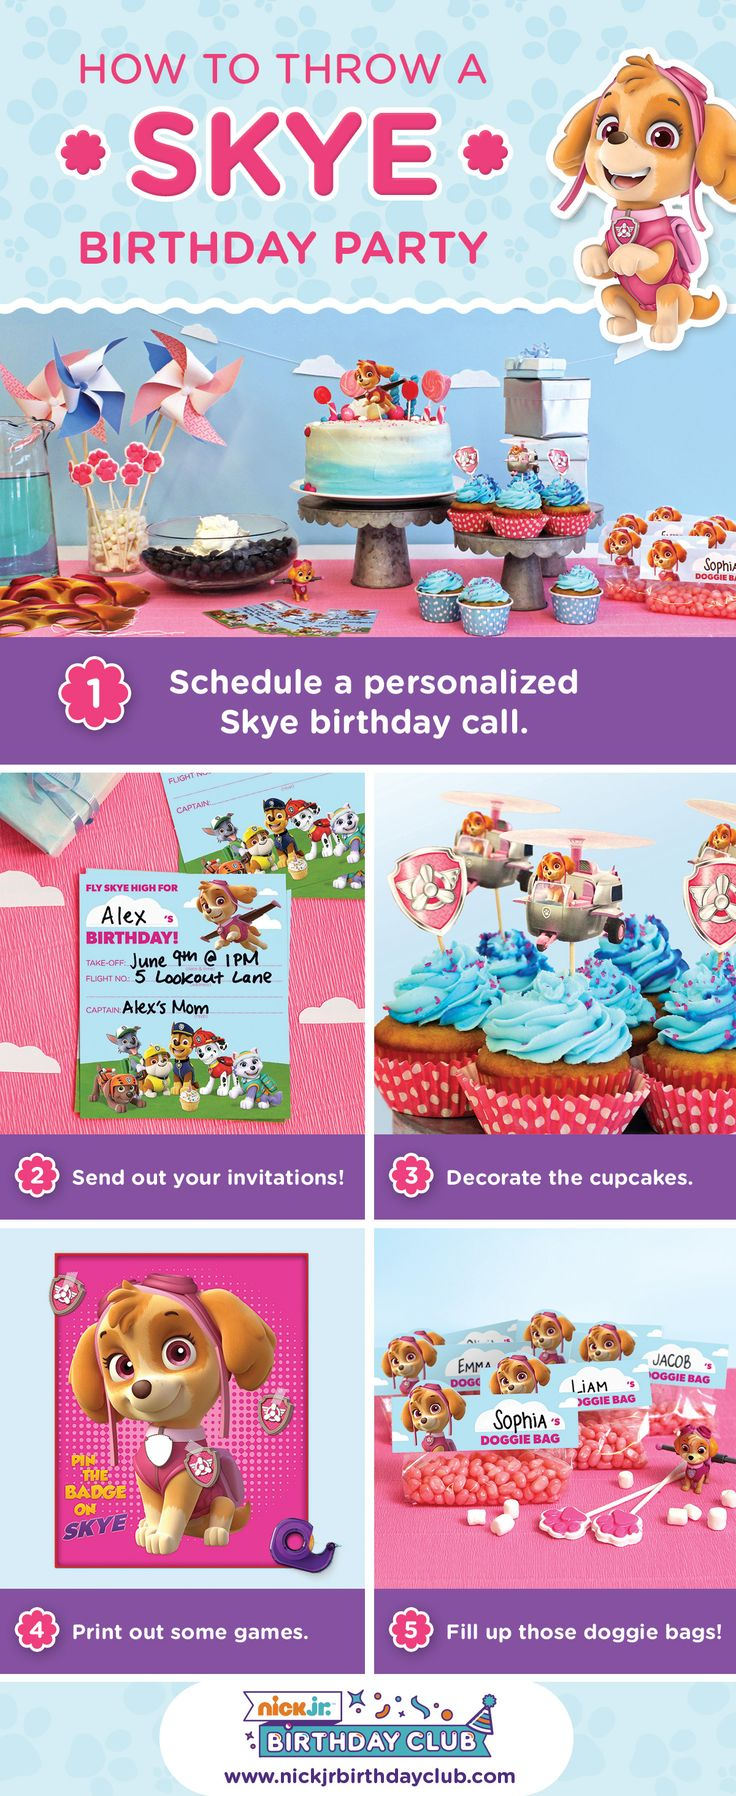 Join the Nick Jr. Birthday Club and schedule a personalized phone call from Skye from PAW Patrol! You'll get free PAW Patrol printable party supplies, Skye birthday party planning ideas and hacks, and so much more! Your child won't believe their luck on their BIG day! You'll never run out of PAW patrol kids birthday party ideas again, and your child will be flying high!